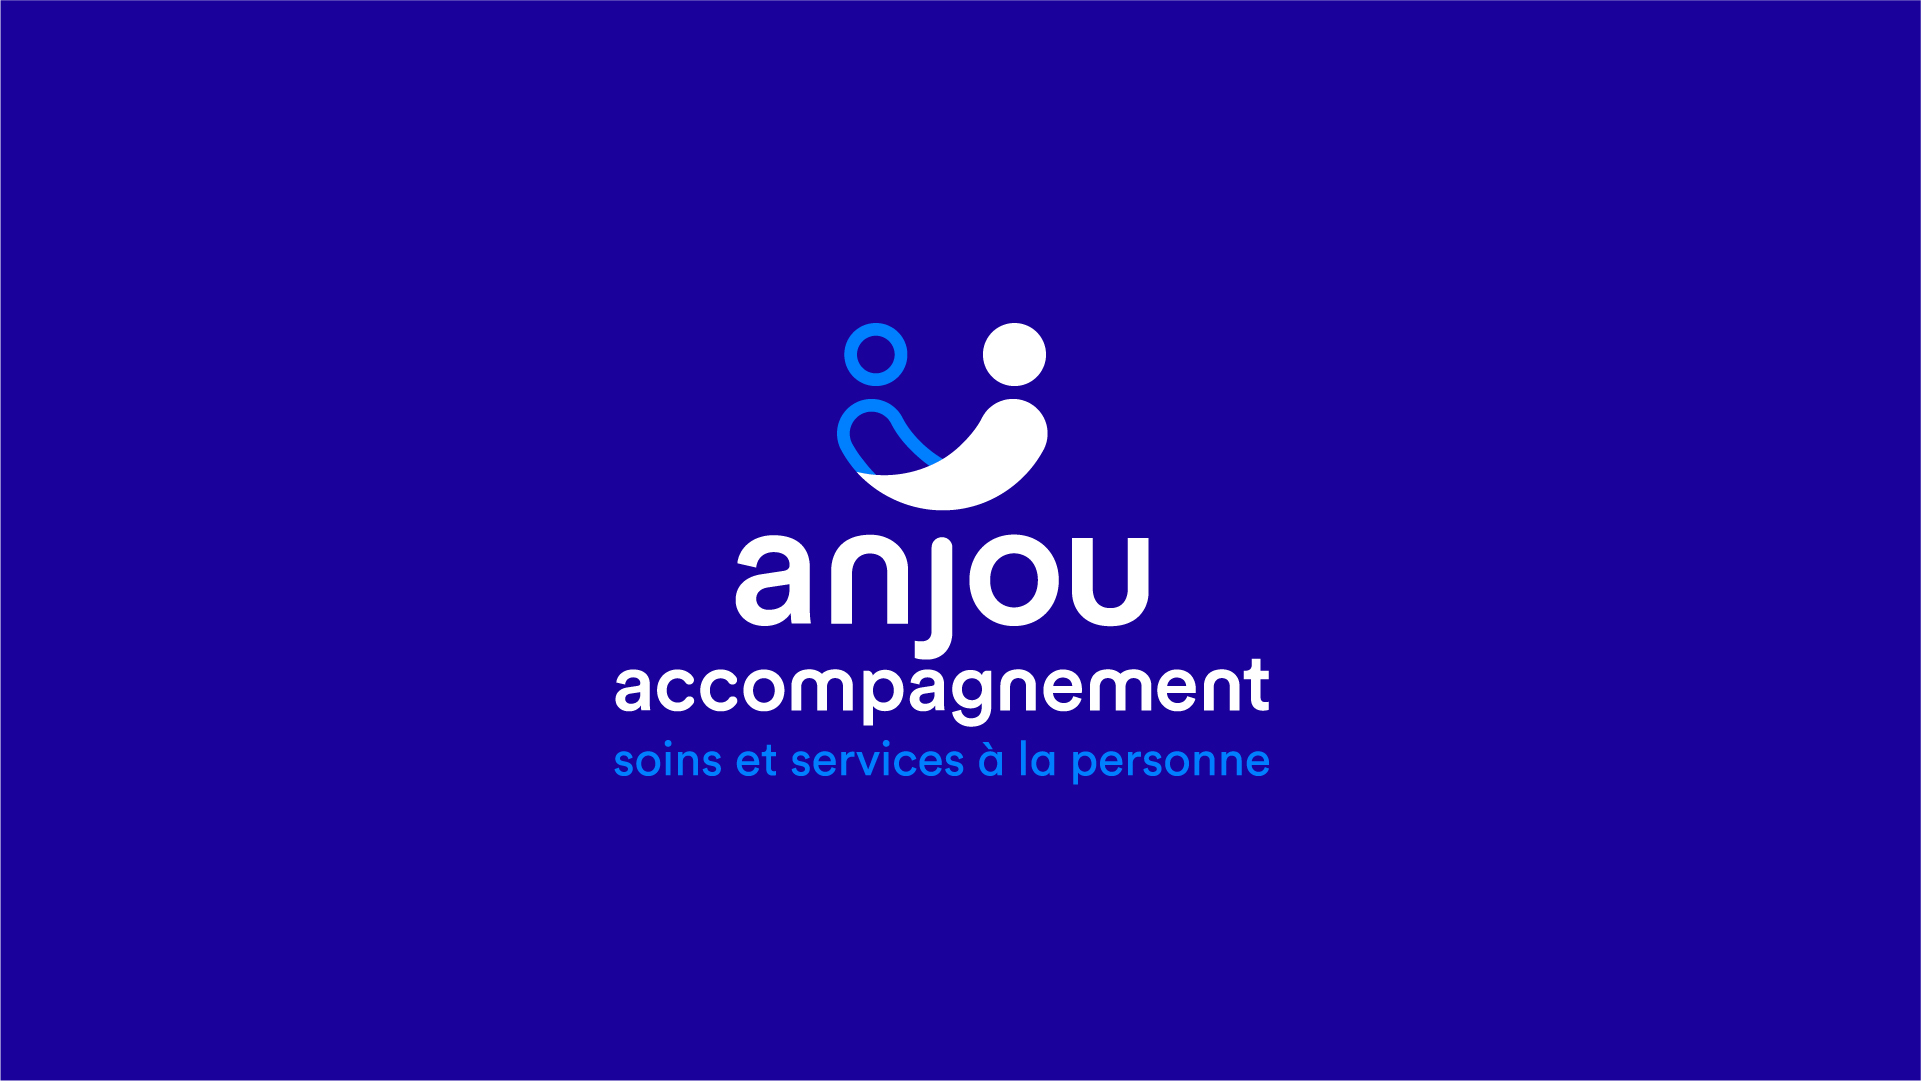 Anjou Accompagnement Association Identite Visuelle Logotype